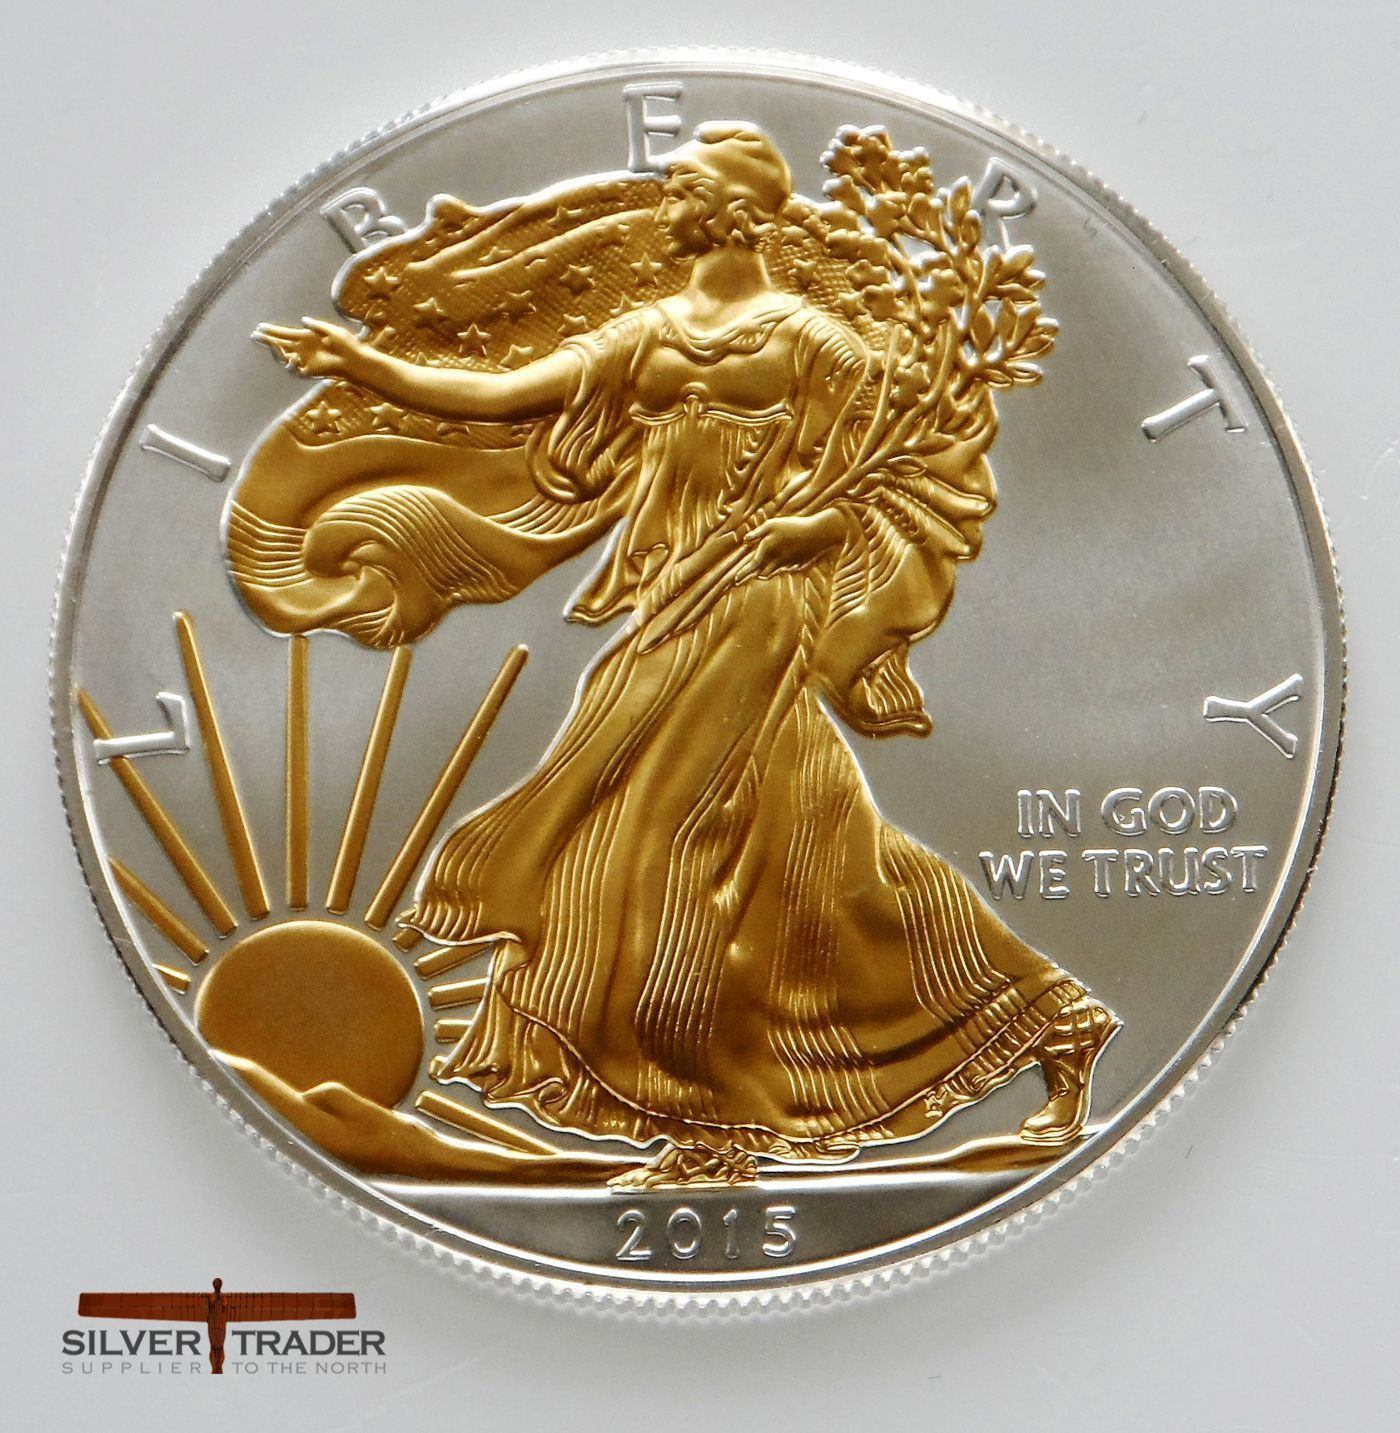 American Eagle Gold Gilded Silver Bullion Coin Goldbullion 14kgold Silver Bullion Coins